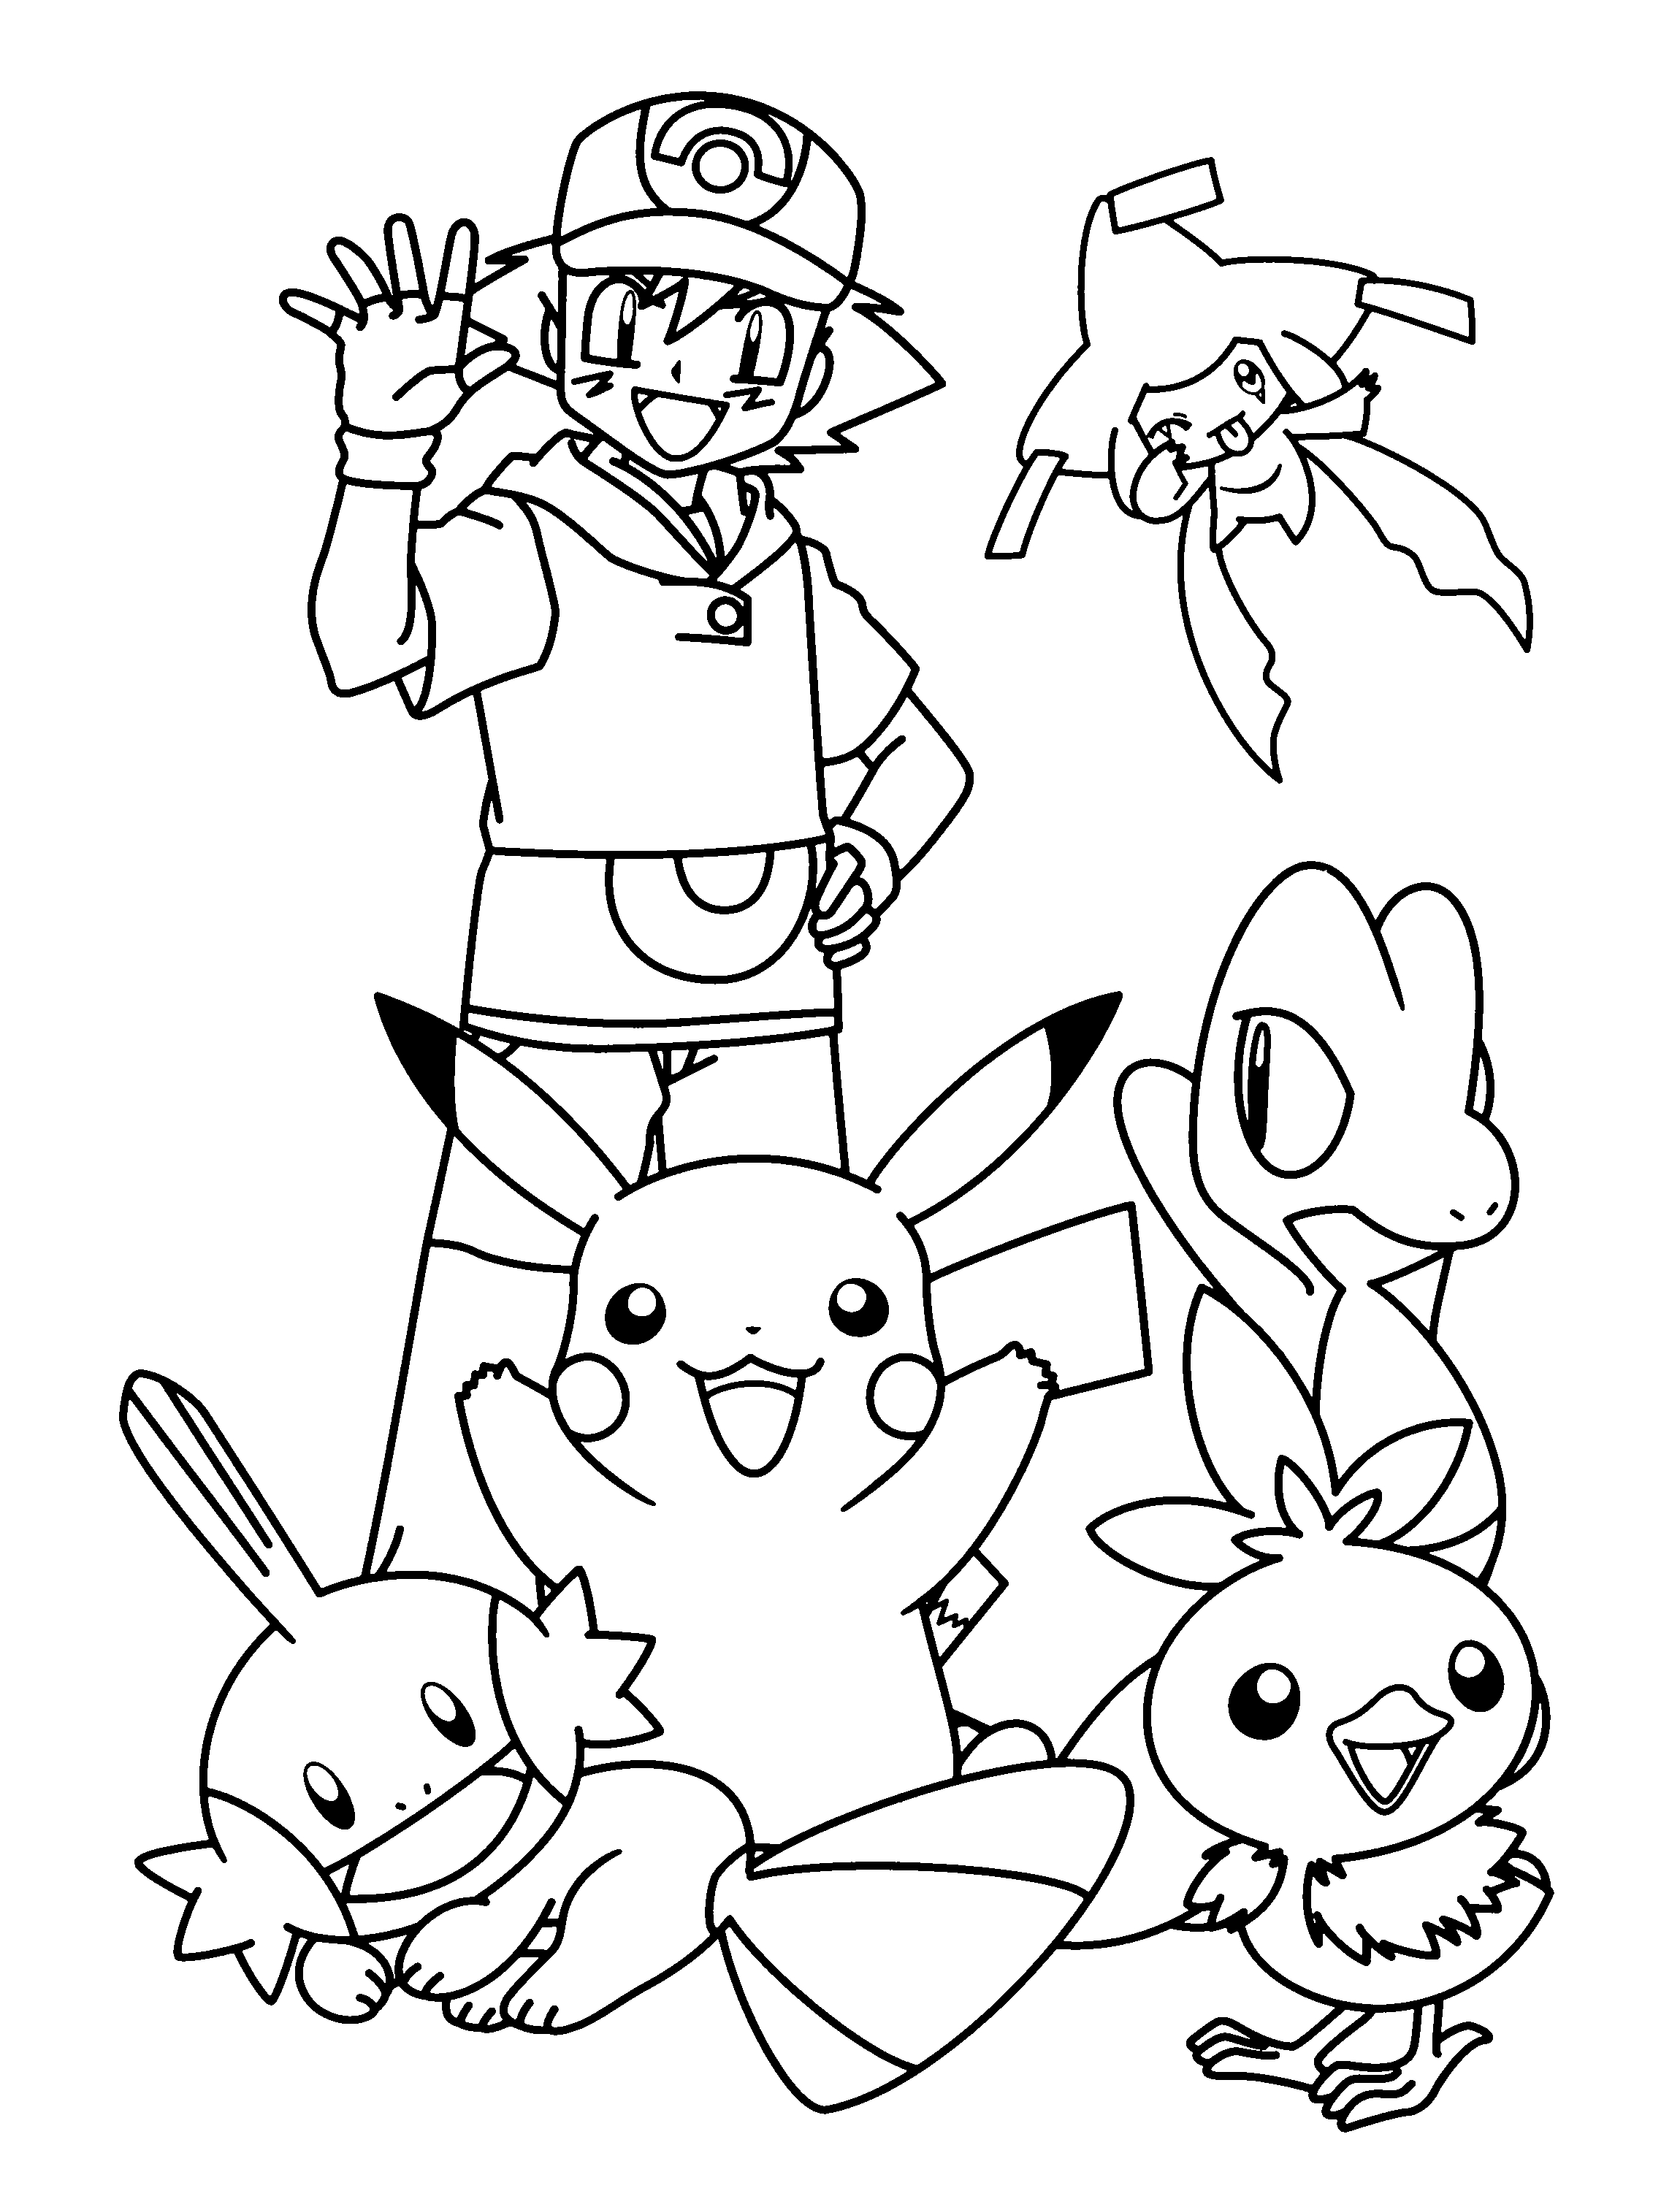 2300x3000 New Pokemon Go Coloring Pages Collection Printable Coloring Sheet